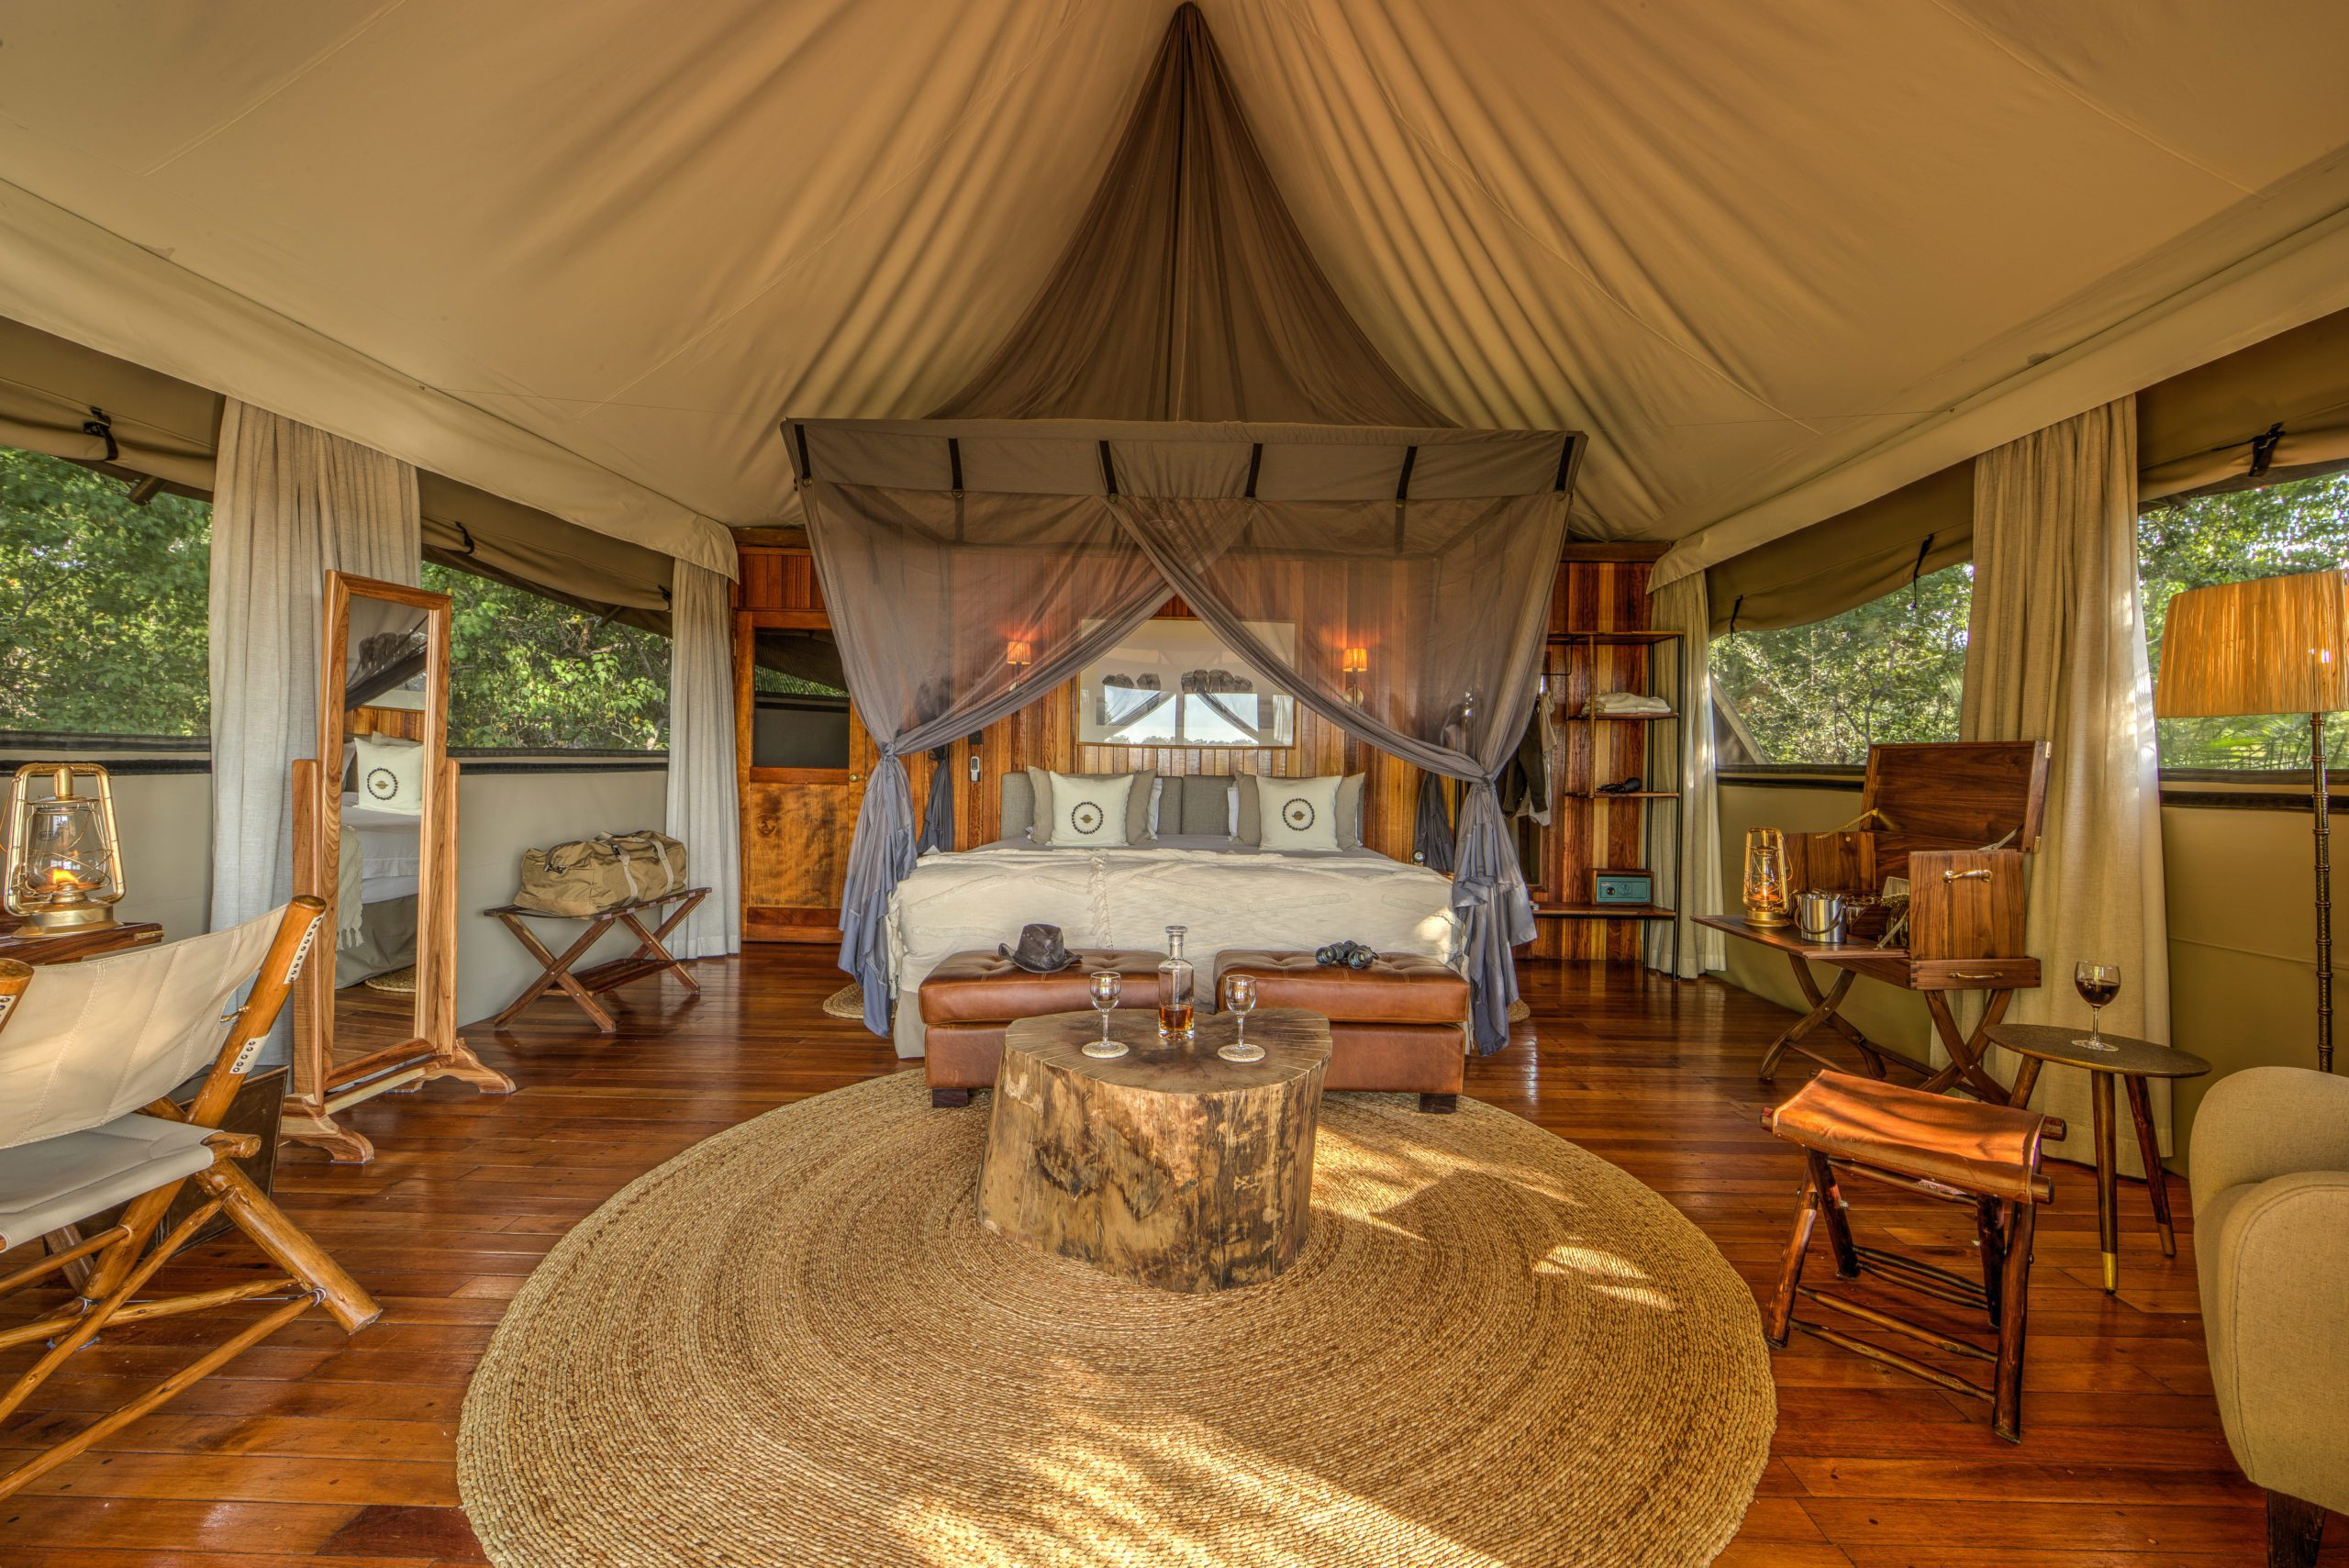 Kanana Camp interior room view of the bed and open air sides seen on our Botswana safari